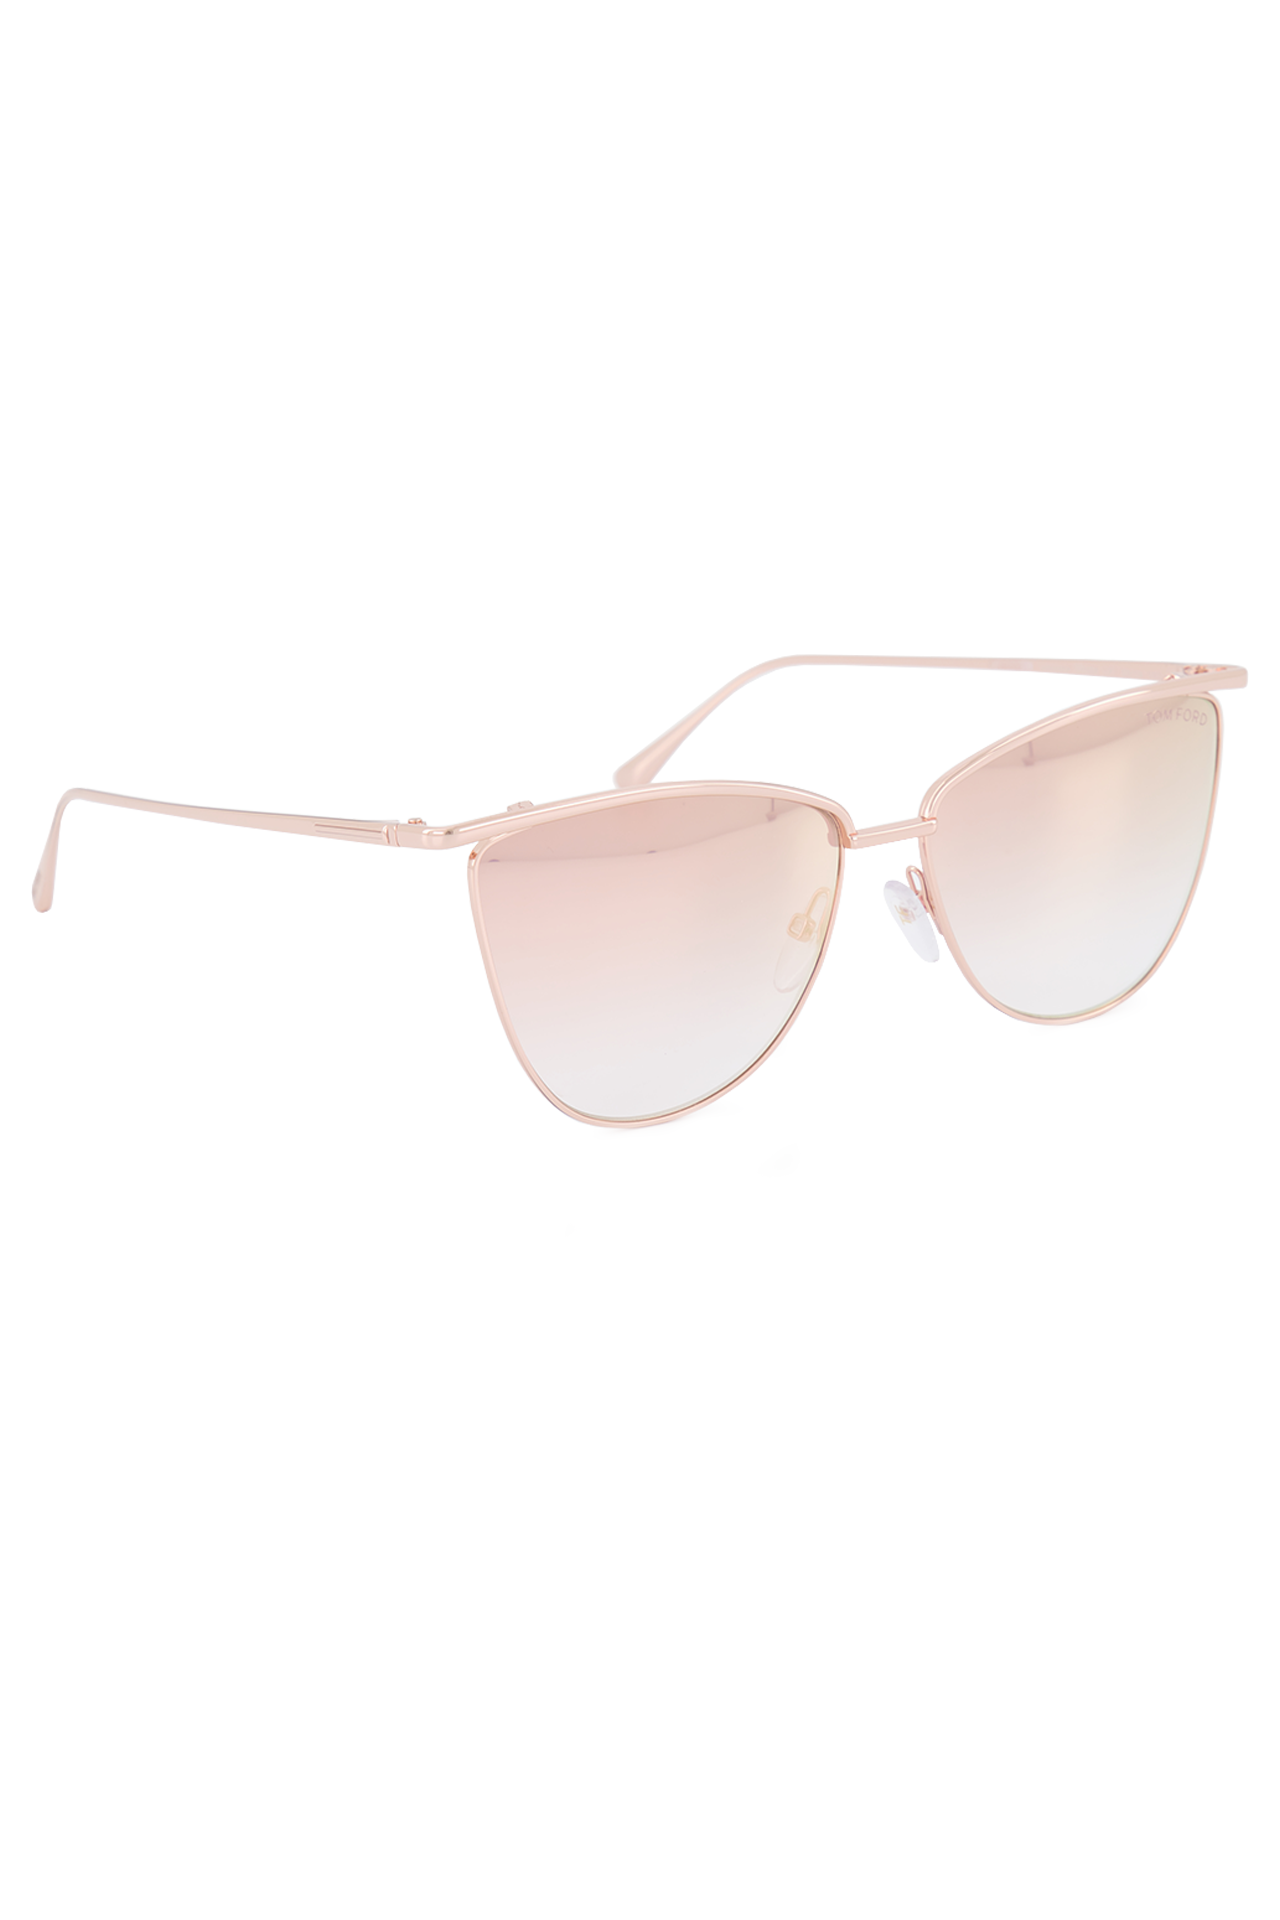 Front angled view image of Tom Ford Veronica Metal Sunglasses